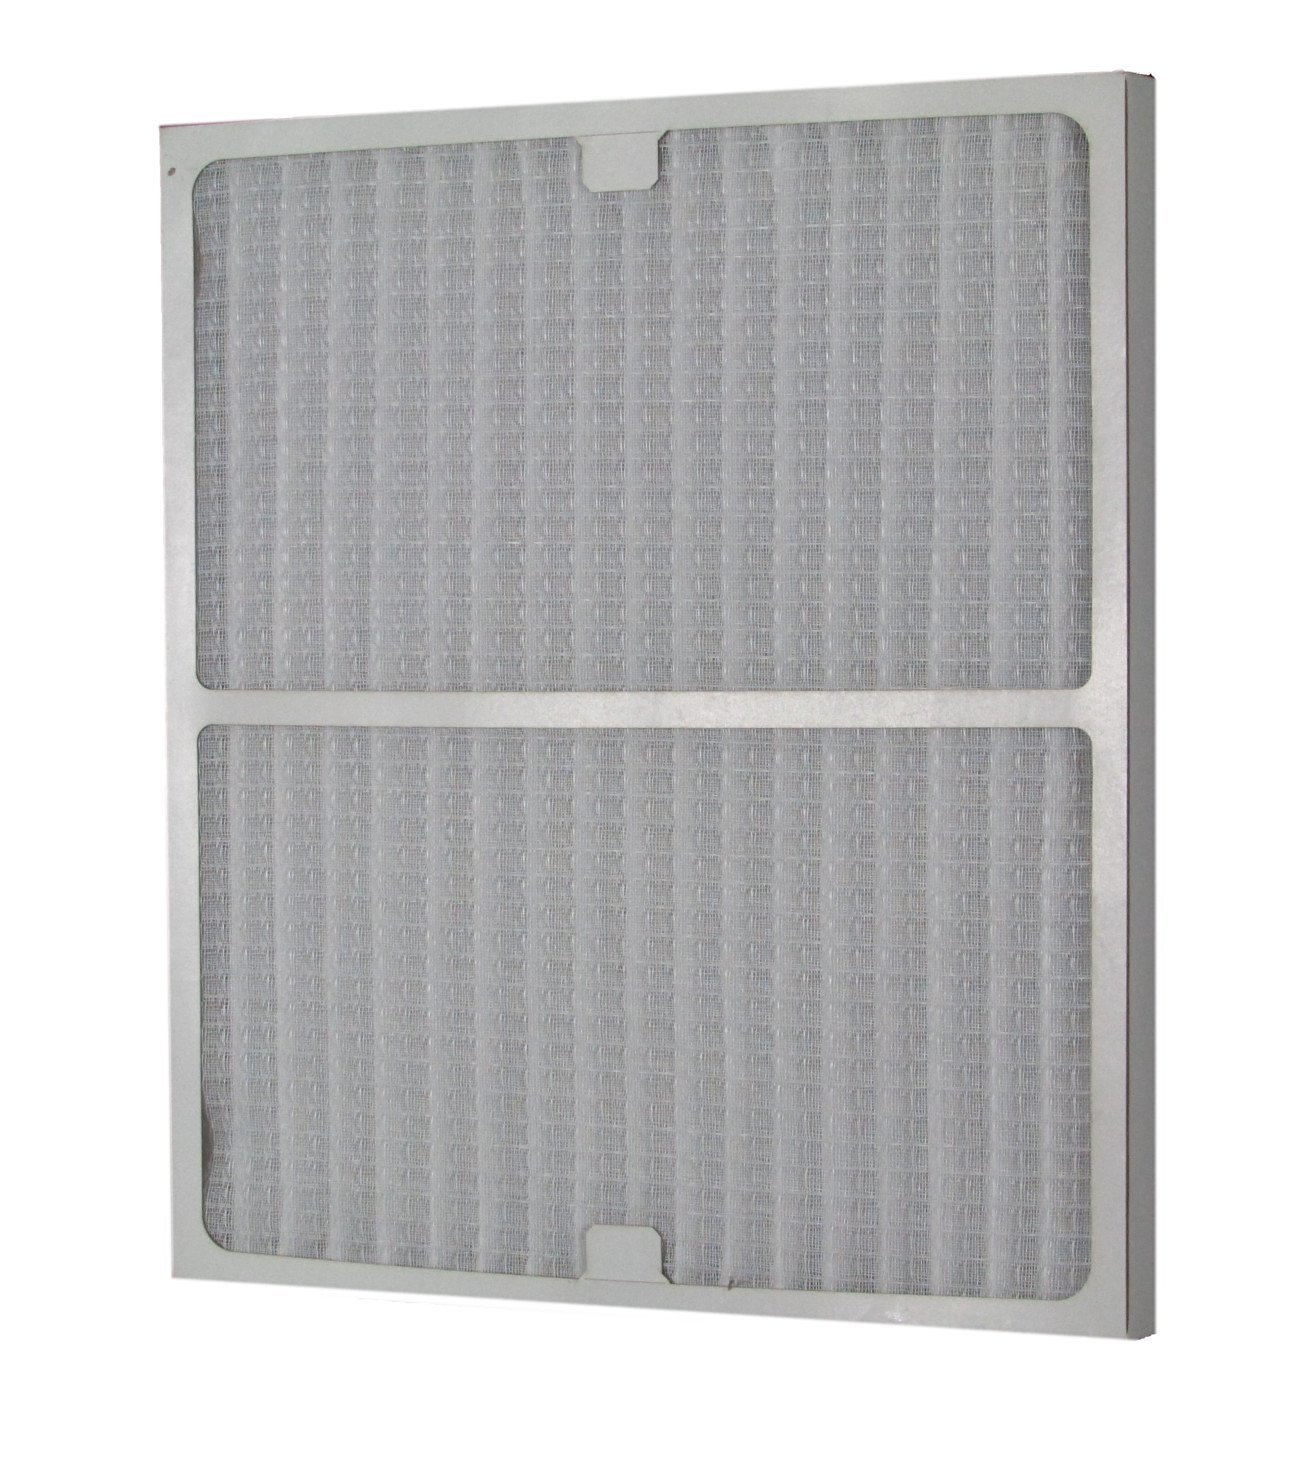 30930 Hunter Comparable Replacement Air Purifier Filter By Tier1 TIER1-HMF1690